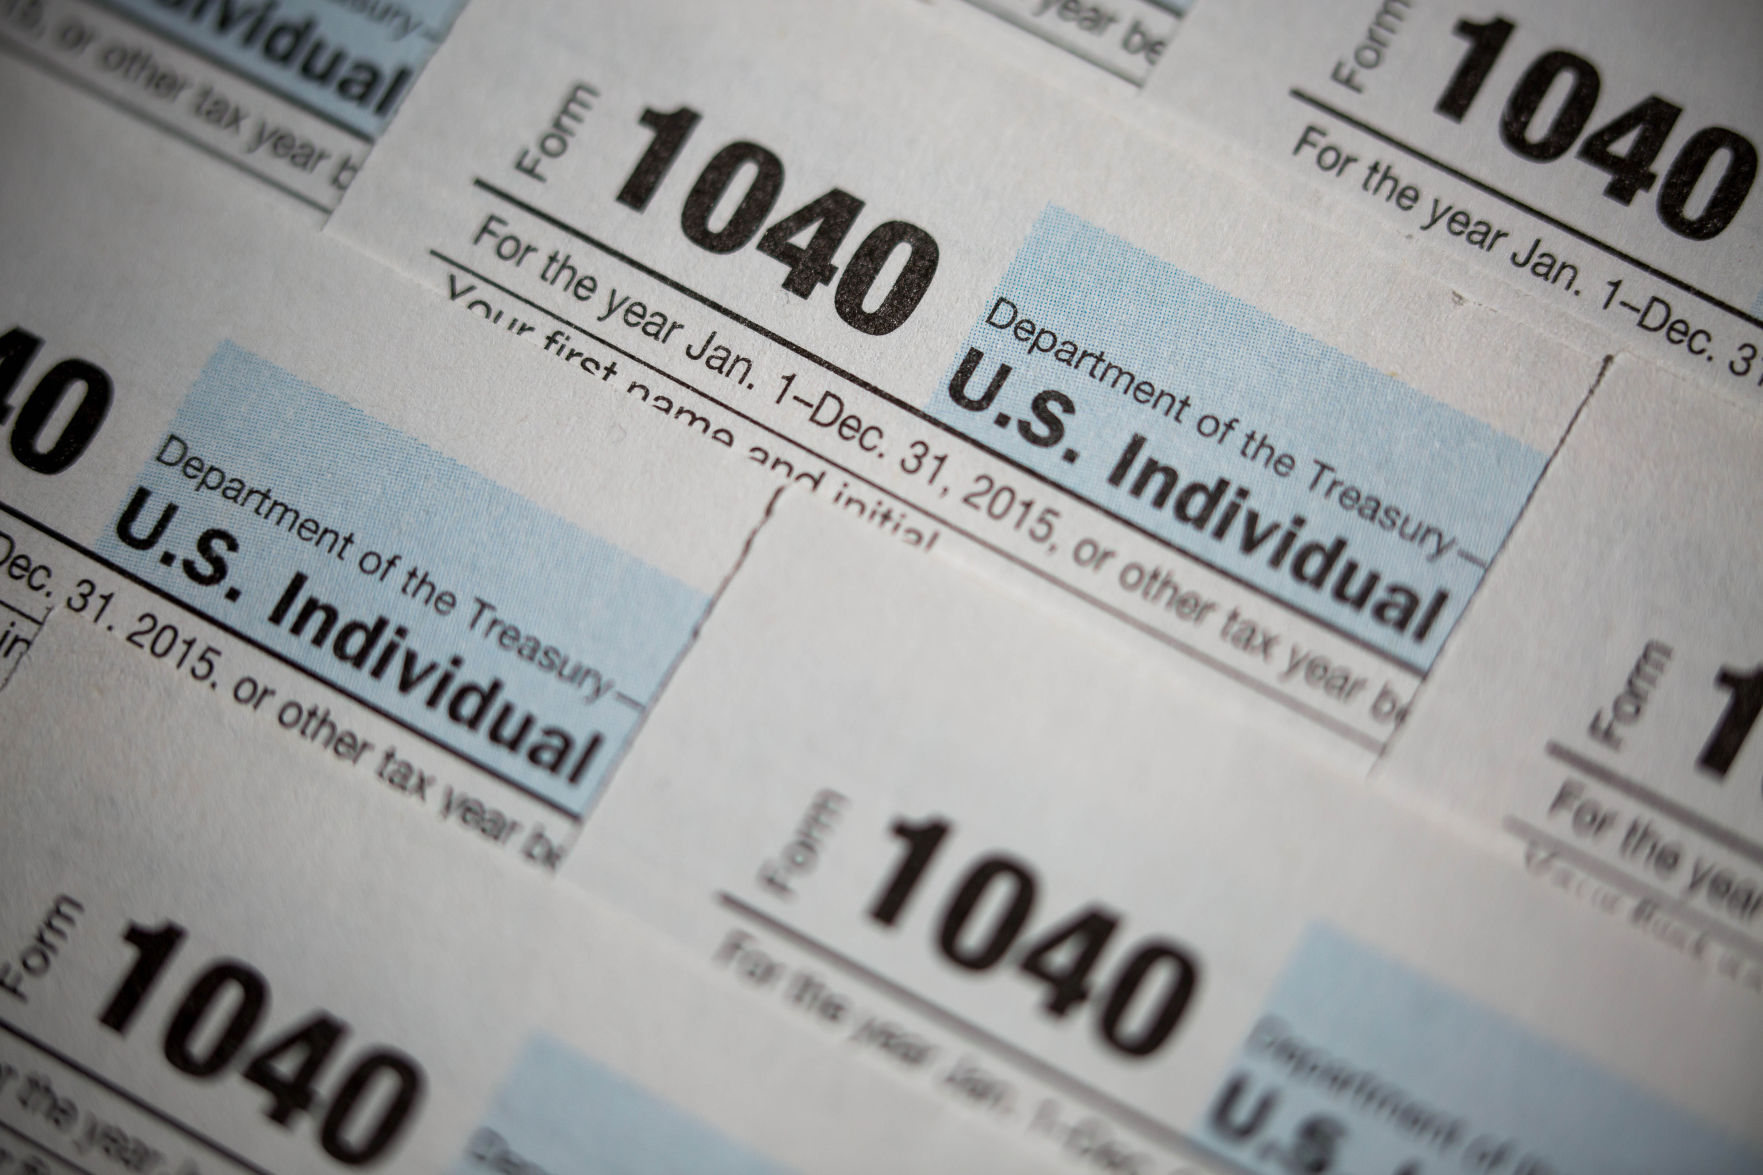 Individual Income Tax forms on Feb 17